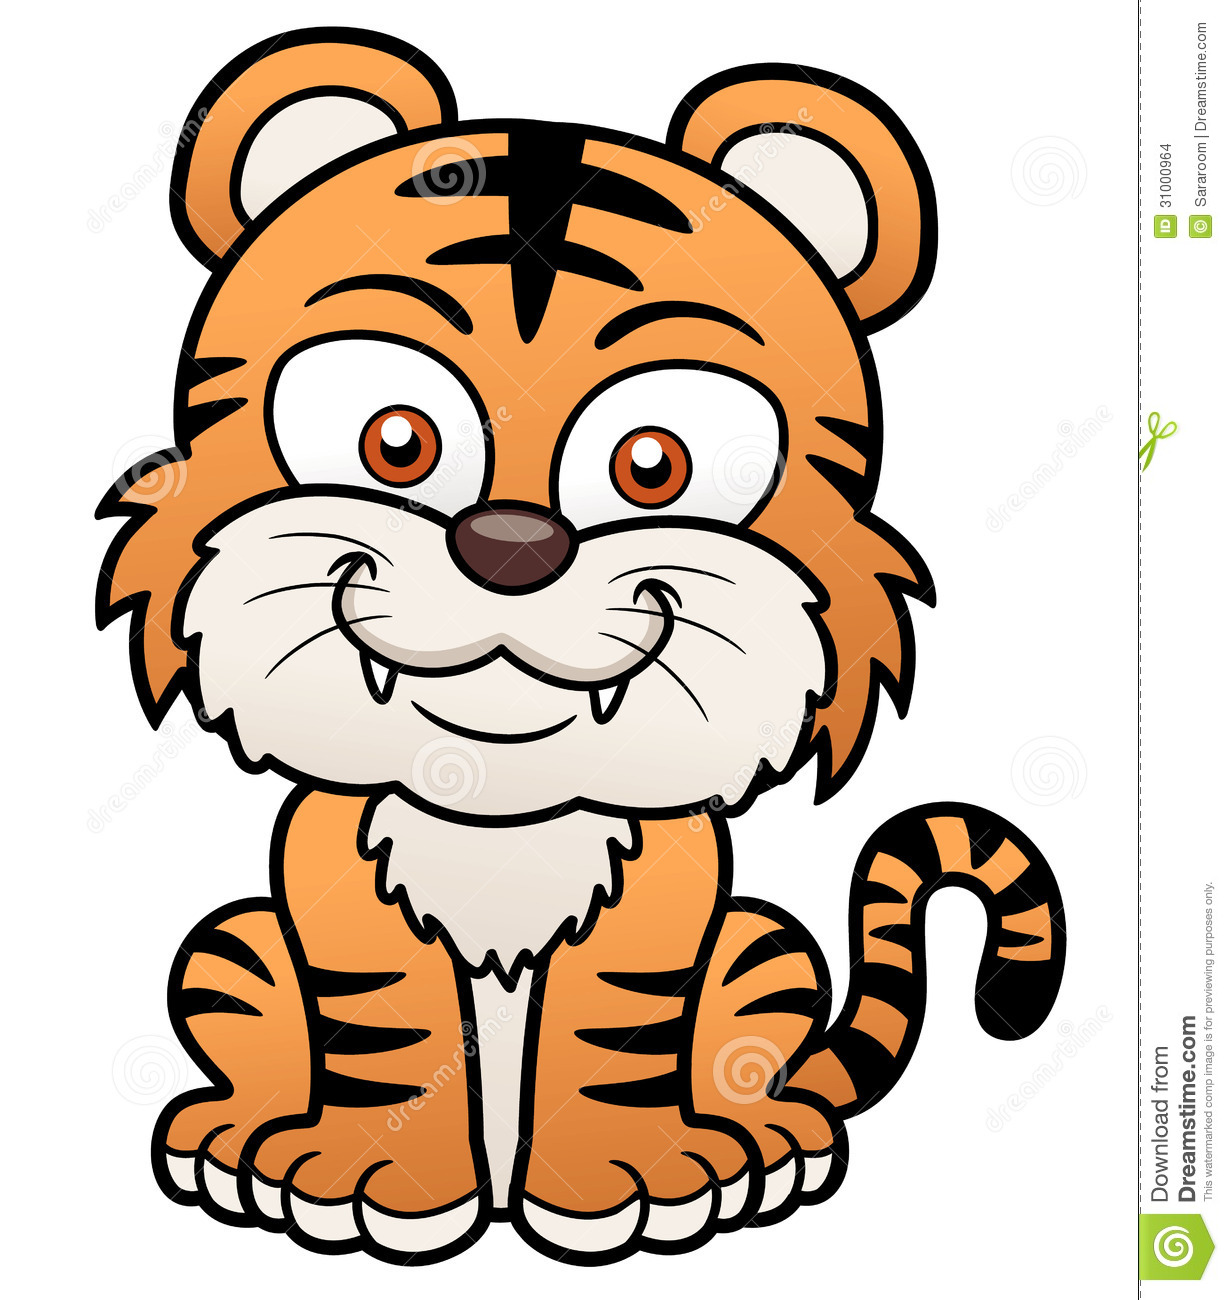 Tiger Cartoon Stock Images - Image: 31000964